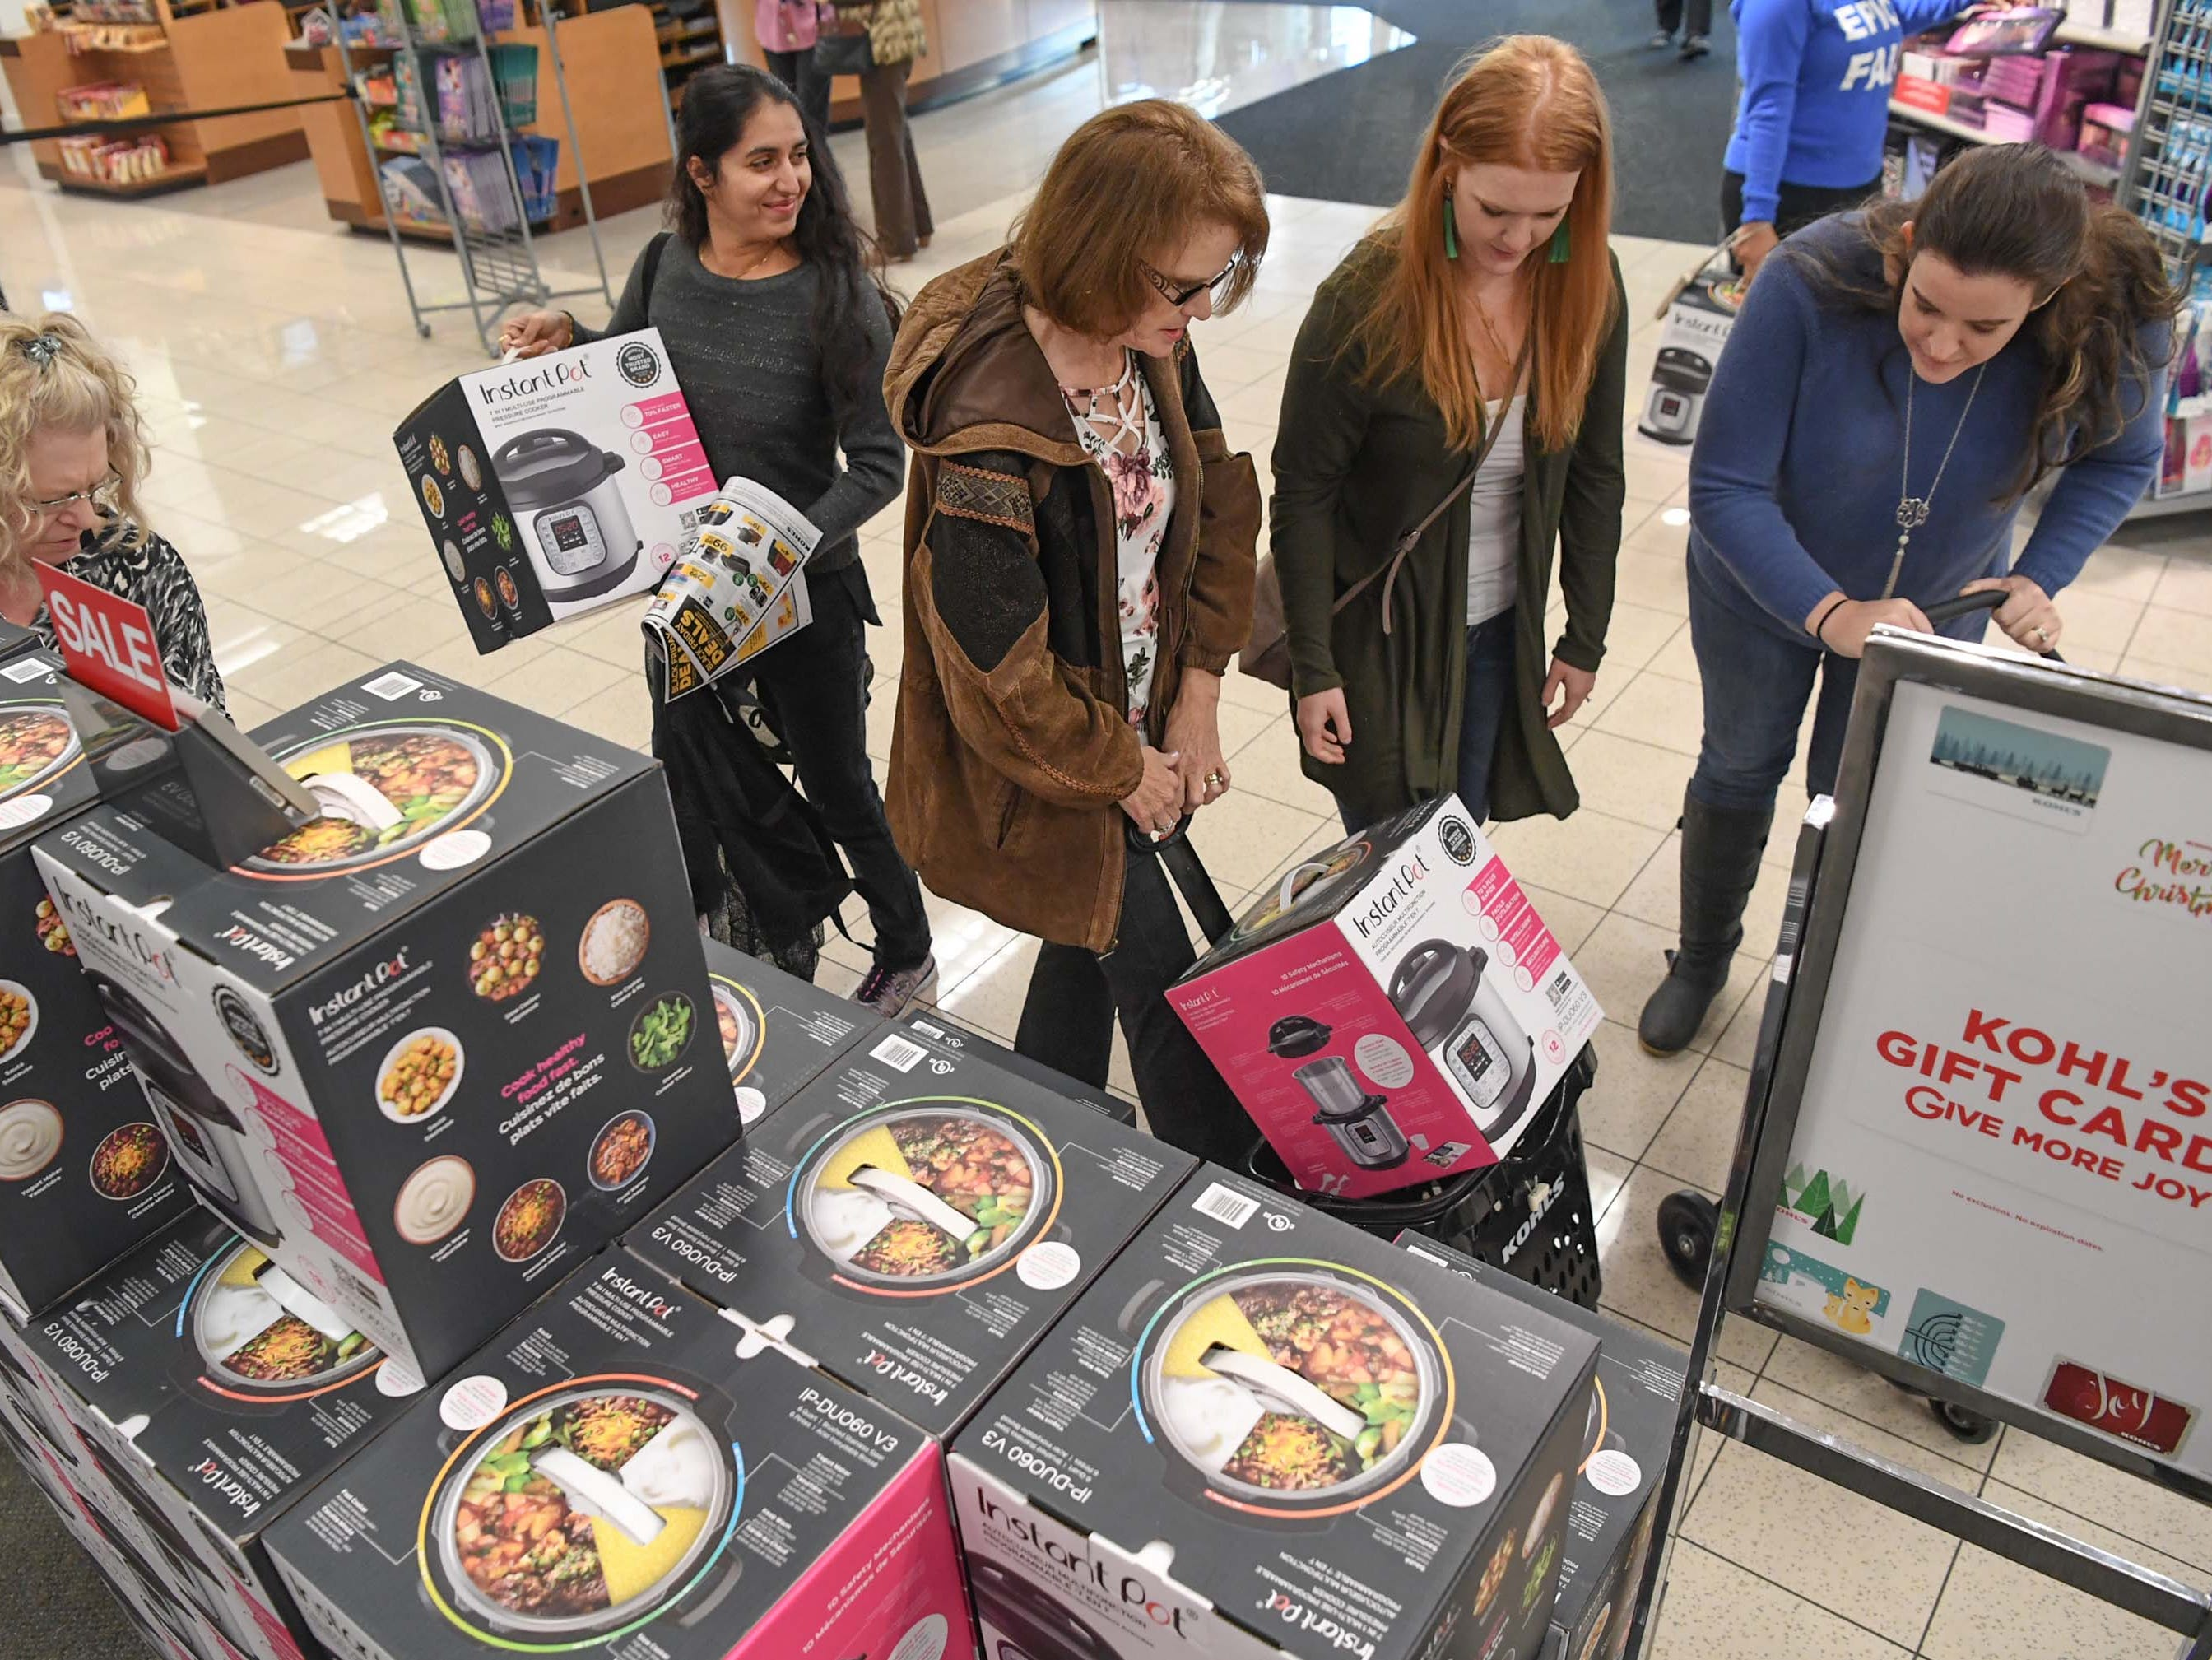 Shivangi Raval, left, of Anderson picks up a sale item pressure cooker during Black Friday sales at Kohl's in Anderson on Thanksgiving Day, Thursday, November 22, 2018.